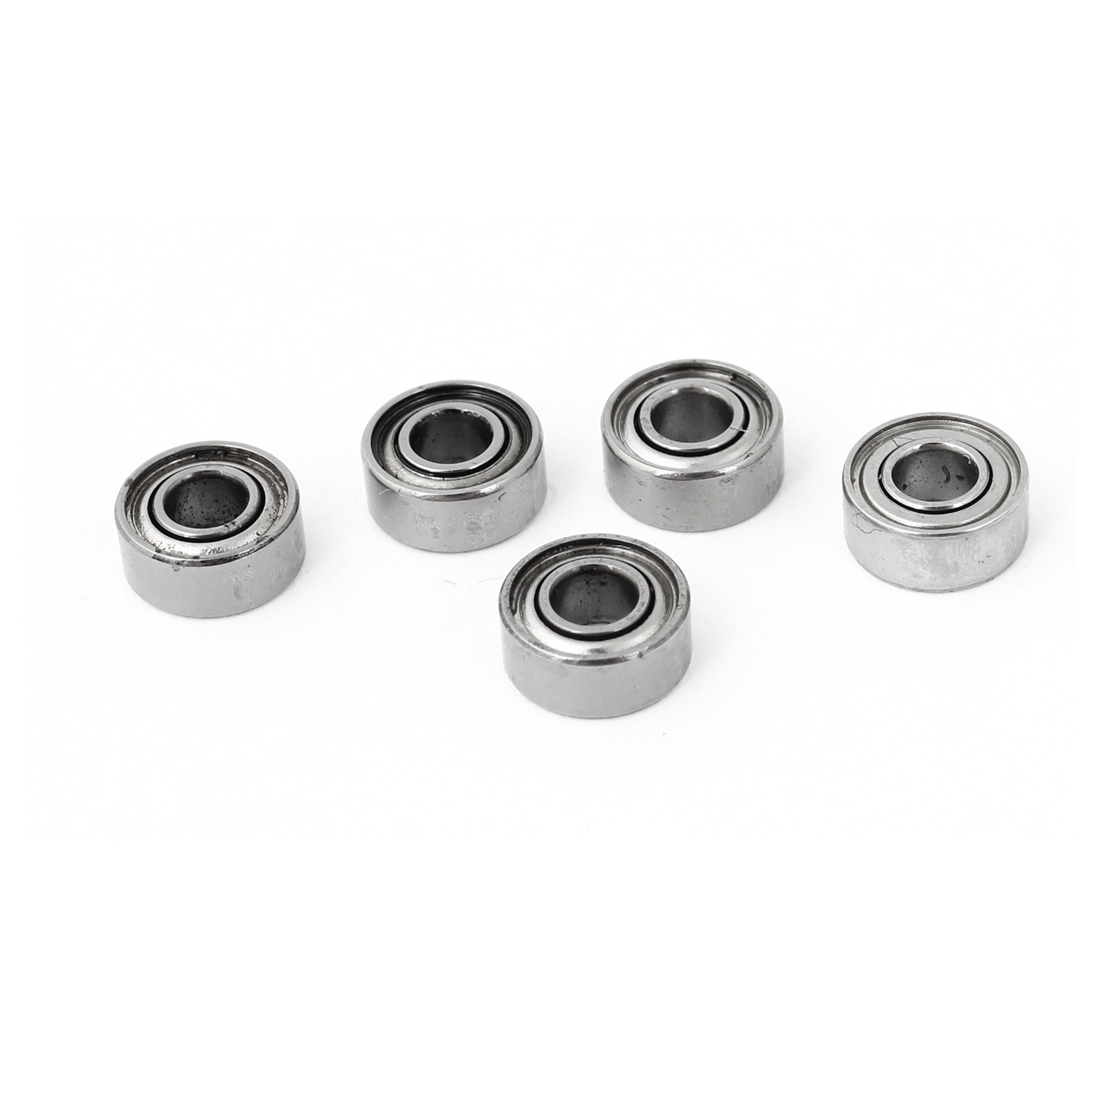 5Pcs 730ZZ 3mm x 7mm x 3mm Shielded Deep Groove Radial Ball Bearing